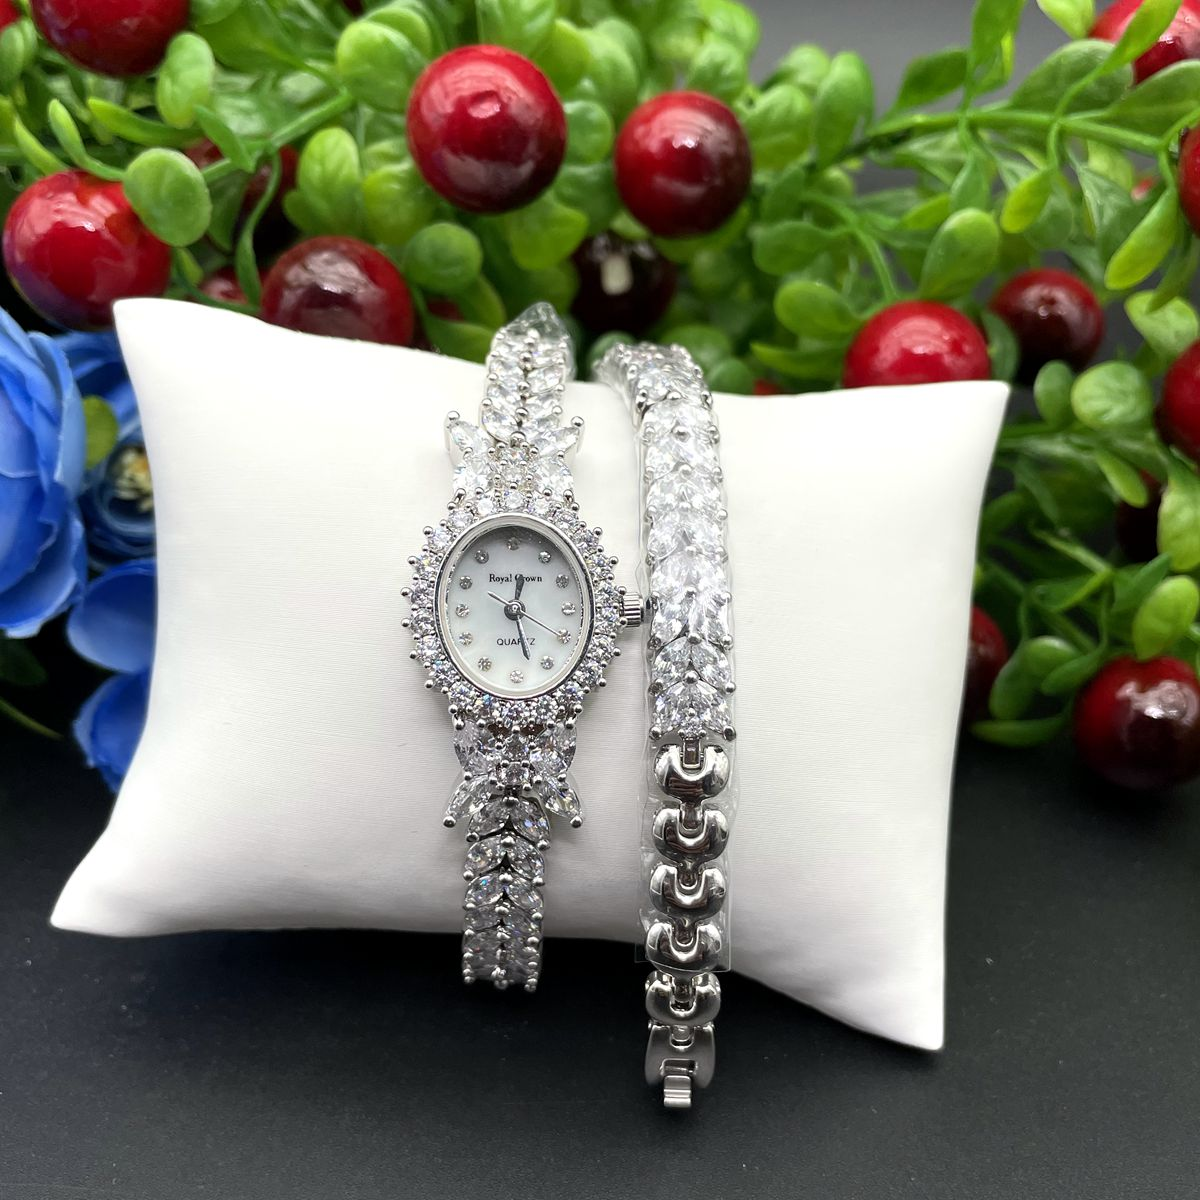 Herhome  Qualtiy AAA Zircon Elements Leaf Austrian Crystal Bracelet Watch for Wedding Party Fashion Jewelry Made with Wholesale enlarge